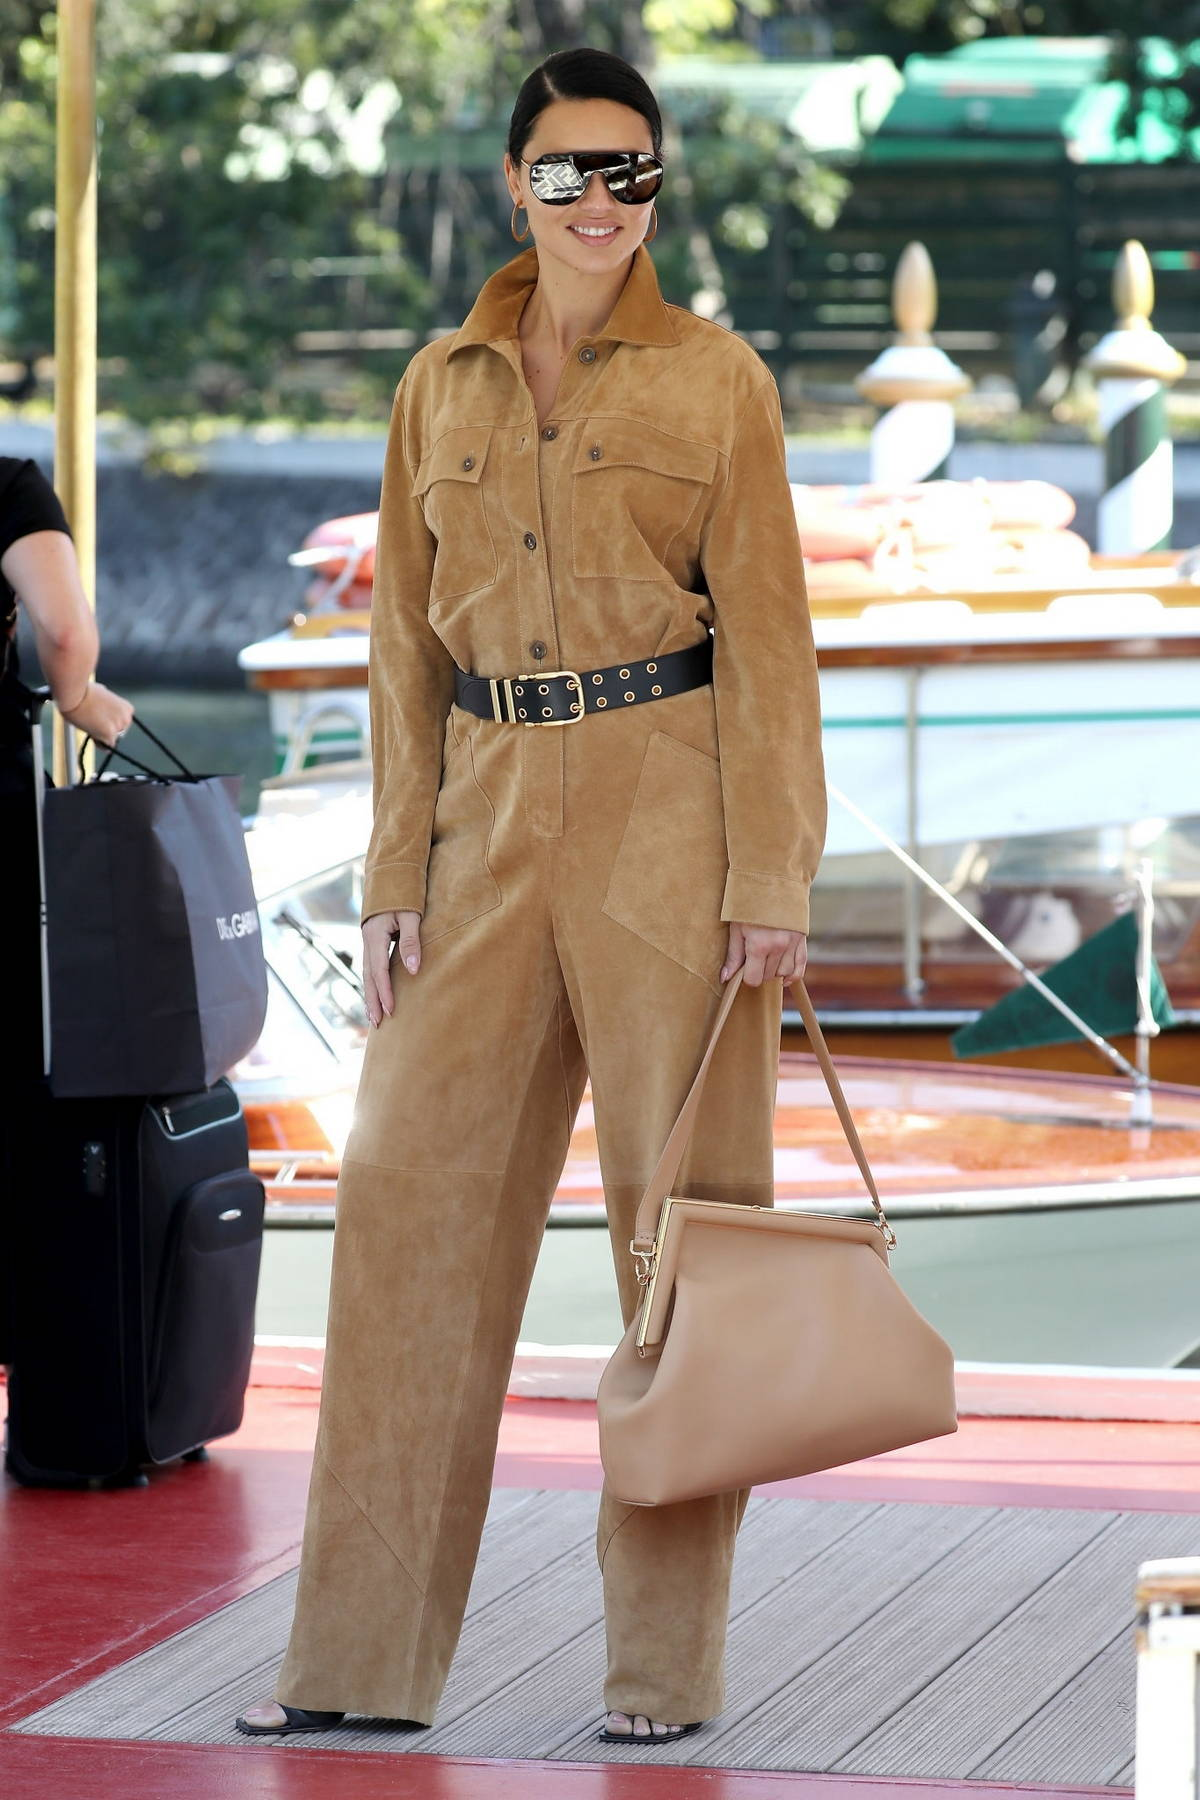 Adriana Lima looks stylish in a brown jumpsuit while arriving at the 78th Venice International Film Festival in Venice, Italy